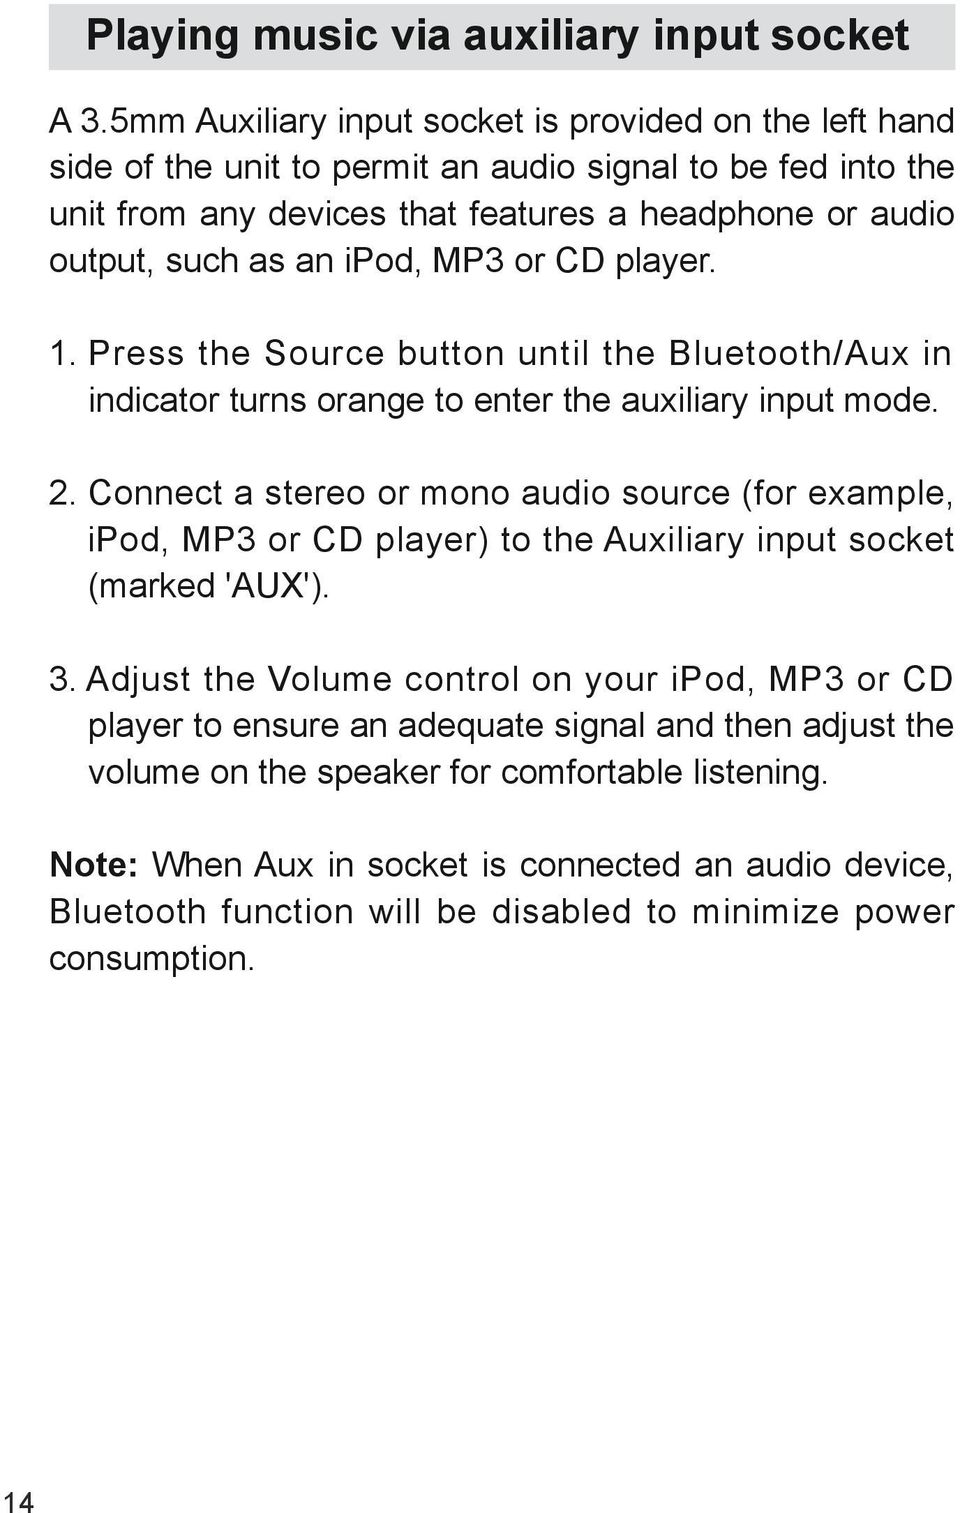 ipod, MP3 or CD player. 1. Press the Source button until the Bluetooth/Aux in indicator turns orange to enter the auxiliary input mode. 2.